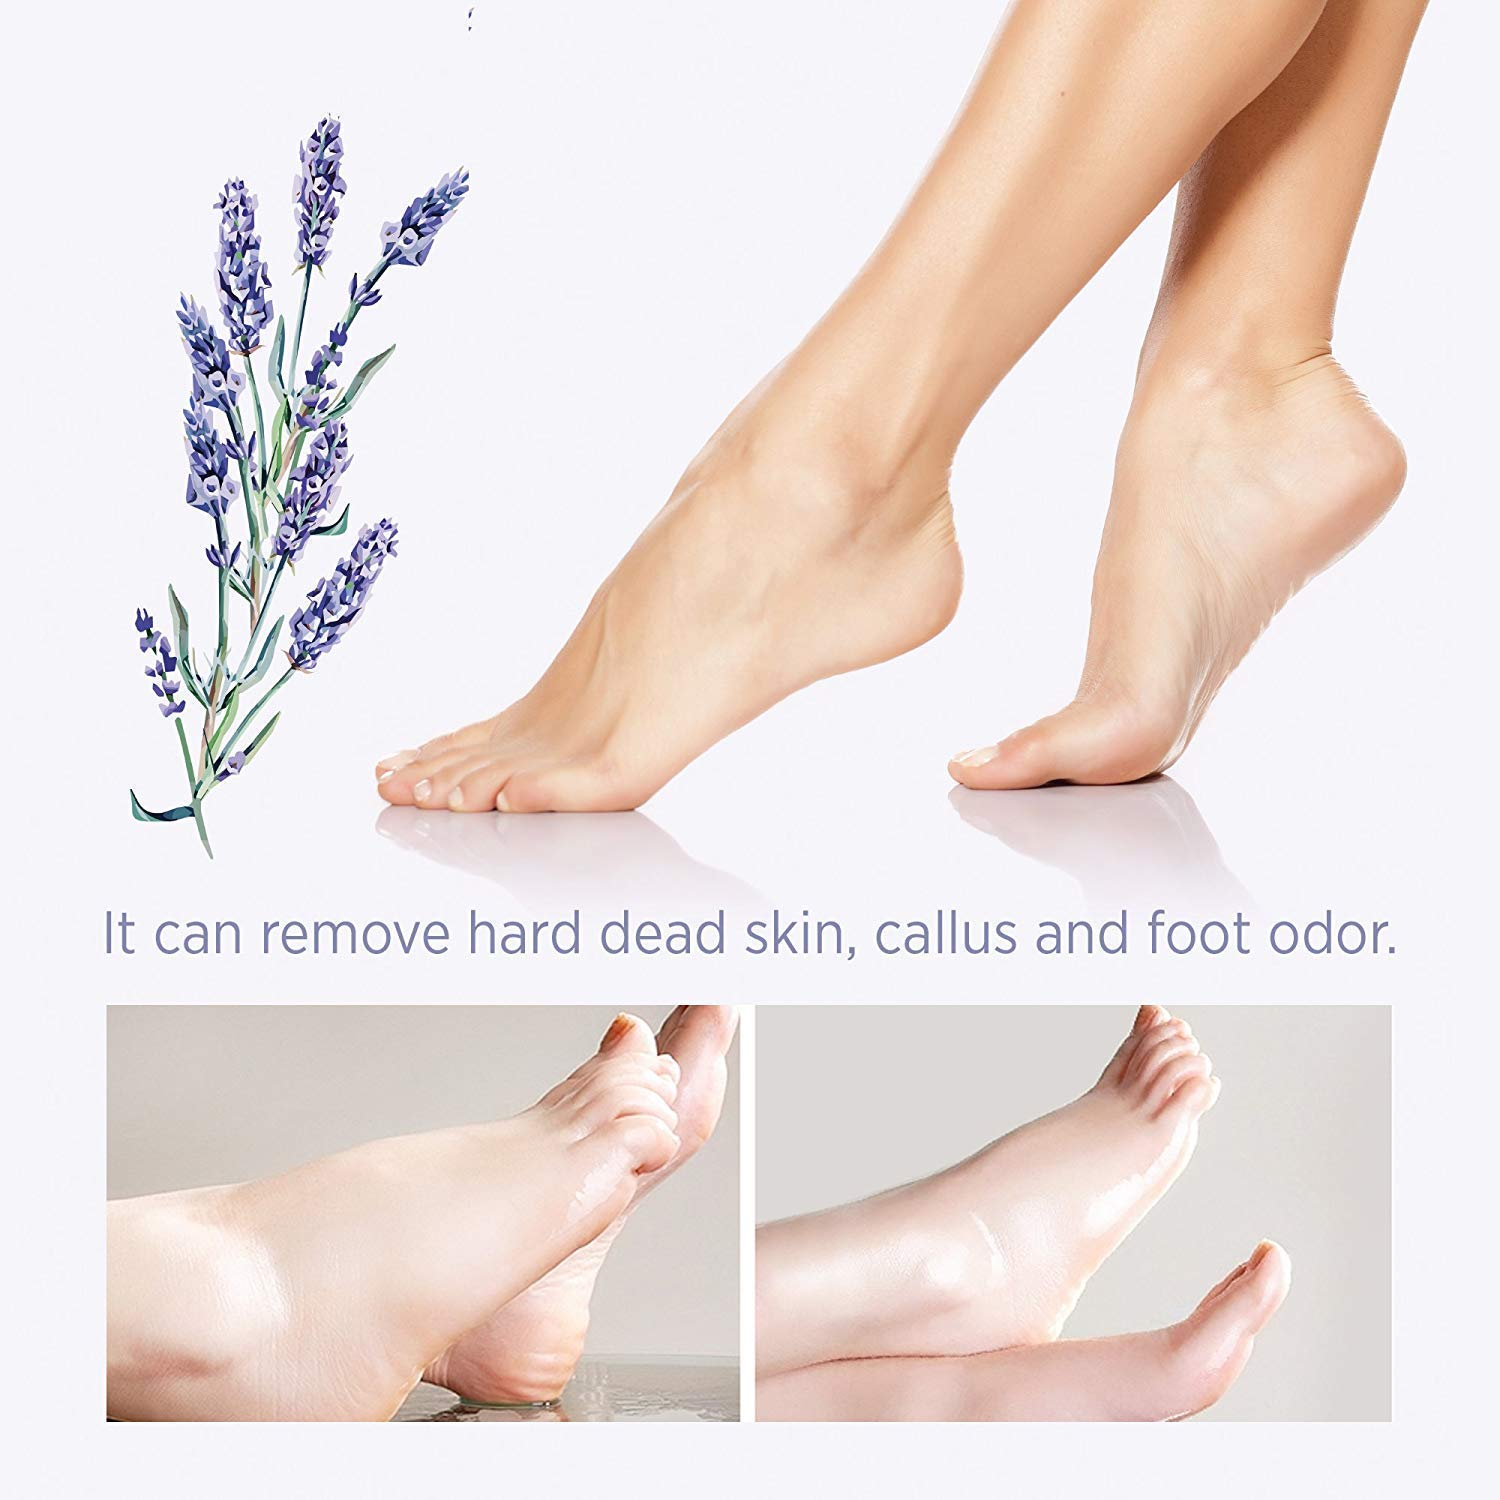 2 Pairs Foot Peel Mask Exfoliant for Soft Feet in 1-2 Weeks, Exfoliating Booties for Peeling Off Calluses & Dead Skin, For Men & Women Lavender by Bea Luz : Beauty